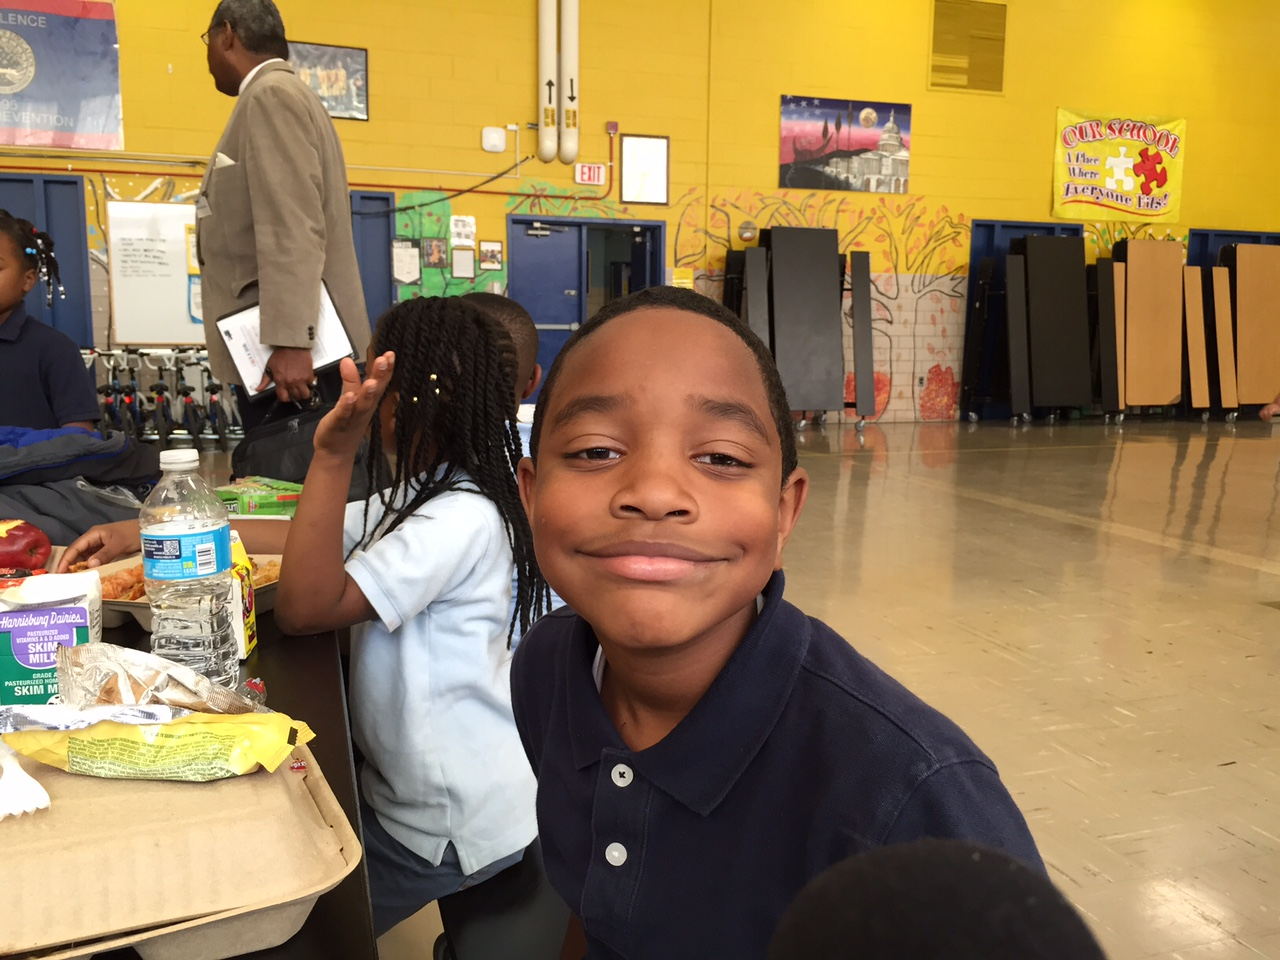 A CW Harris Elementary School student excited about the day's activities. (WTOP/Kate Ryan)